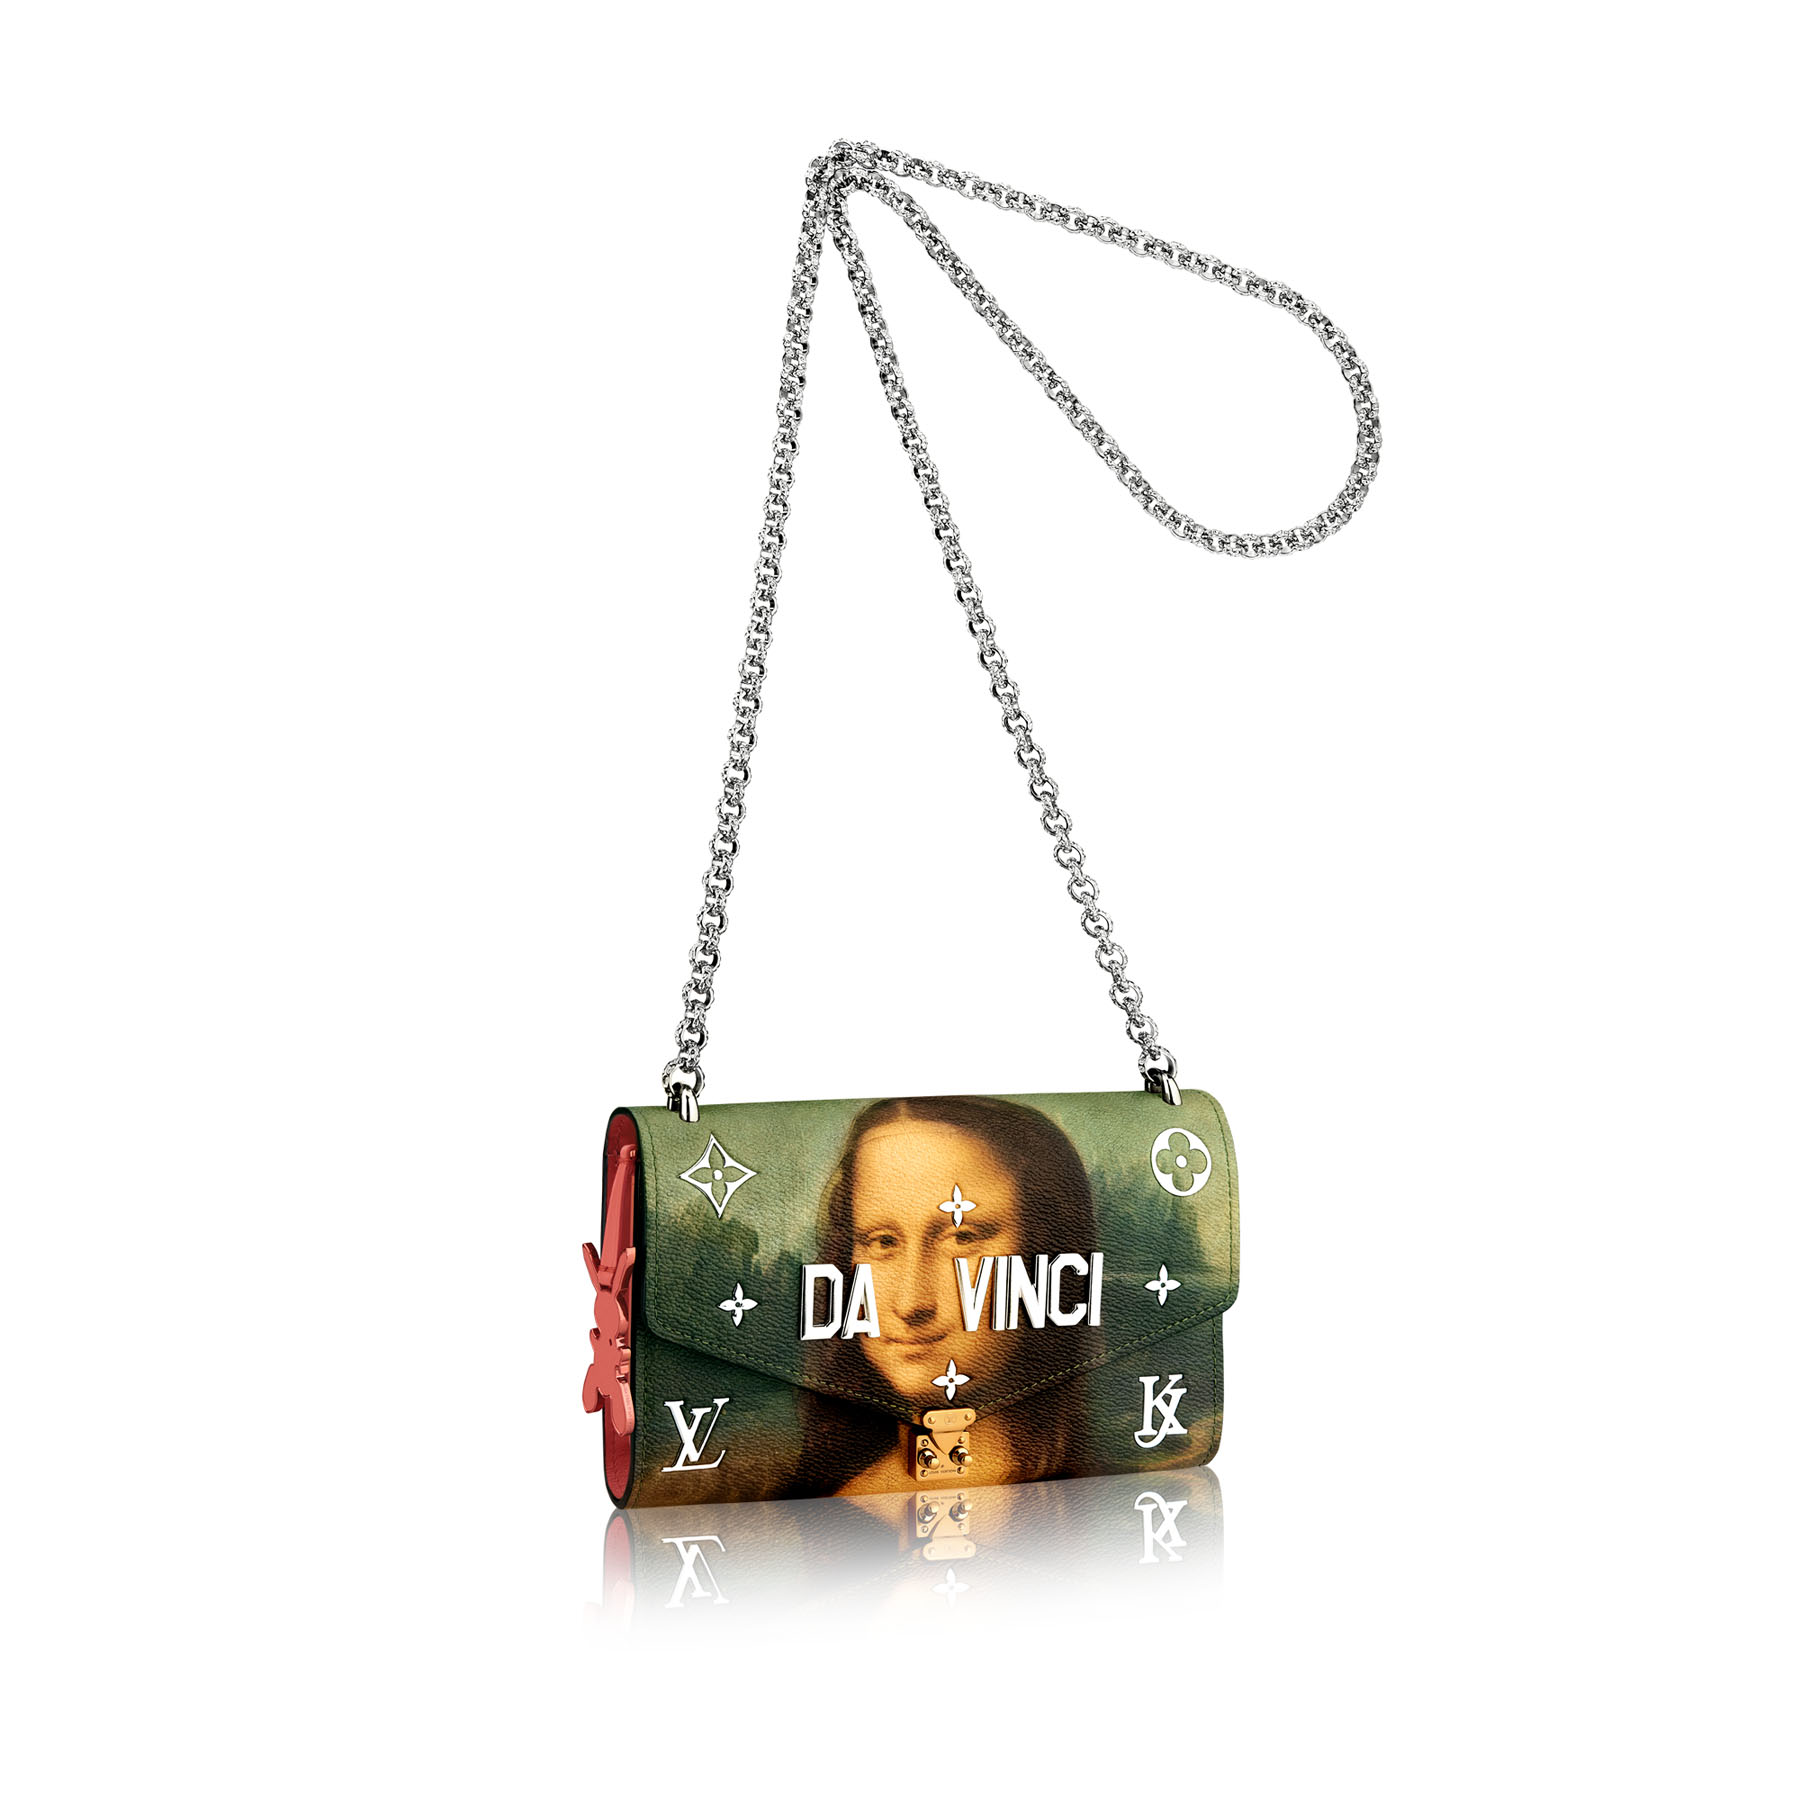 Louis-Vuitton-Jeff-Koons-Collaboration-the-impression-26